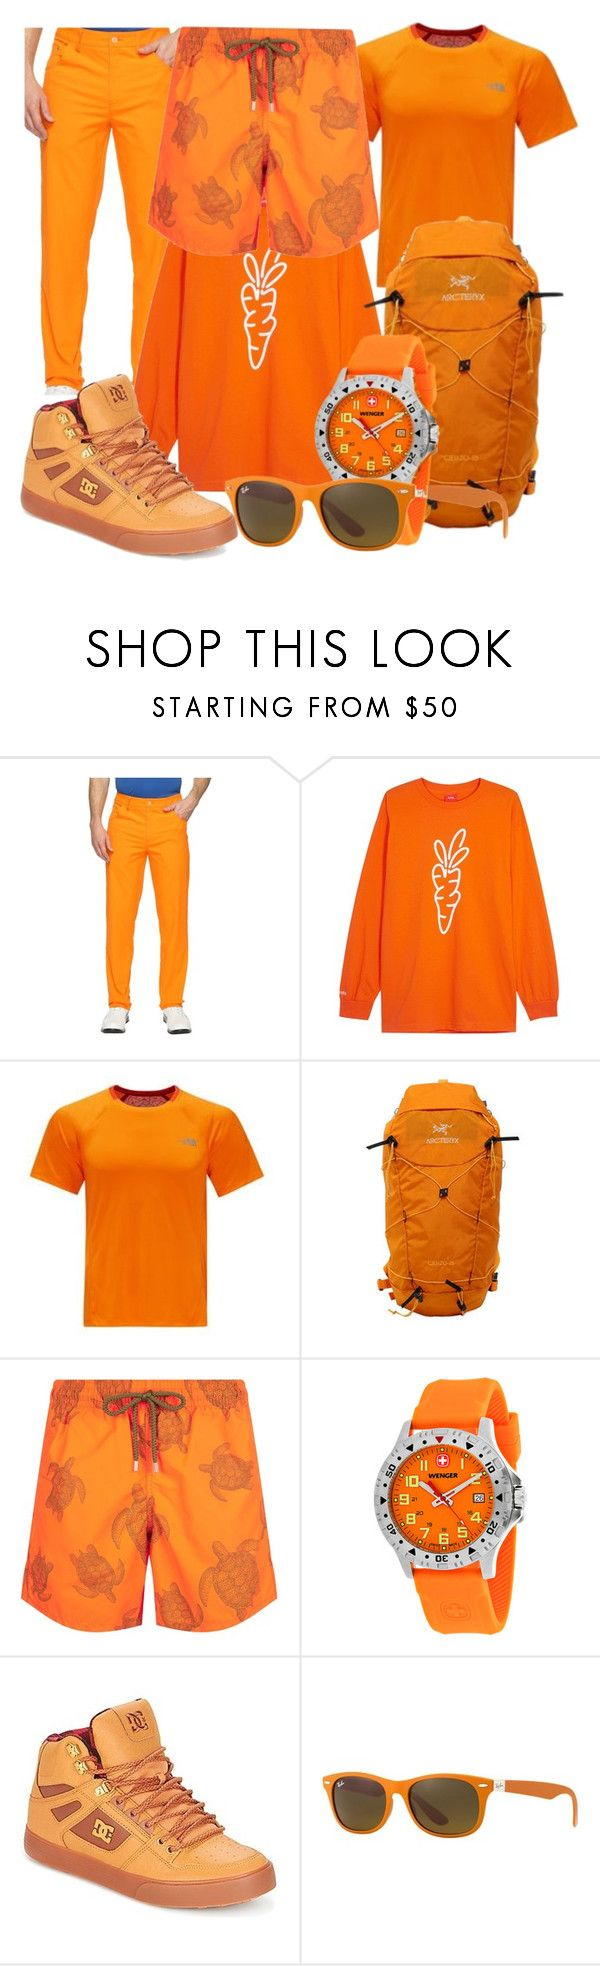 """Color Craze: Orange"" by capricandycorn ❤ liked on Polyvore featuring Puma, Carrots by Anwar Carrots, The North Face, Arc'teryx, Vilebrequin, Wenger, DC Shoes, Ray-Ban, men's fashion and menswear"